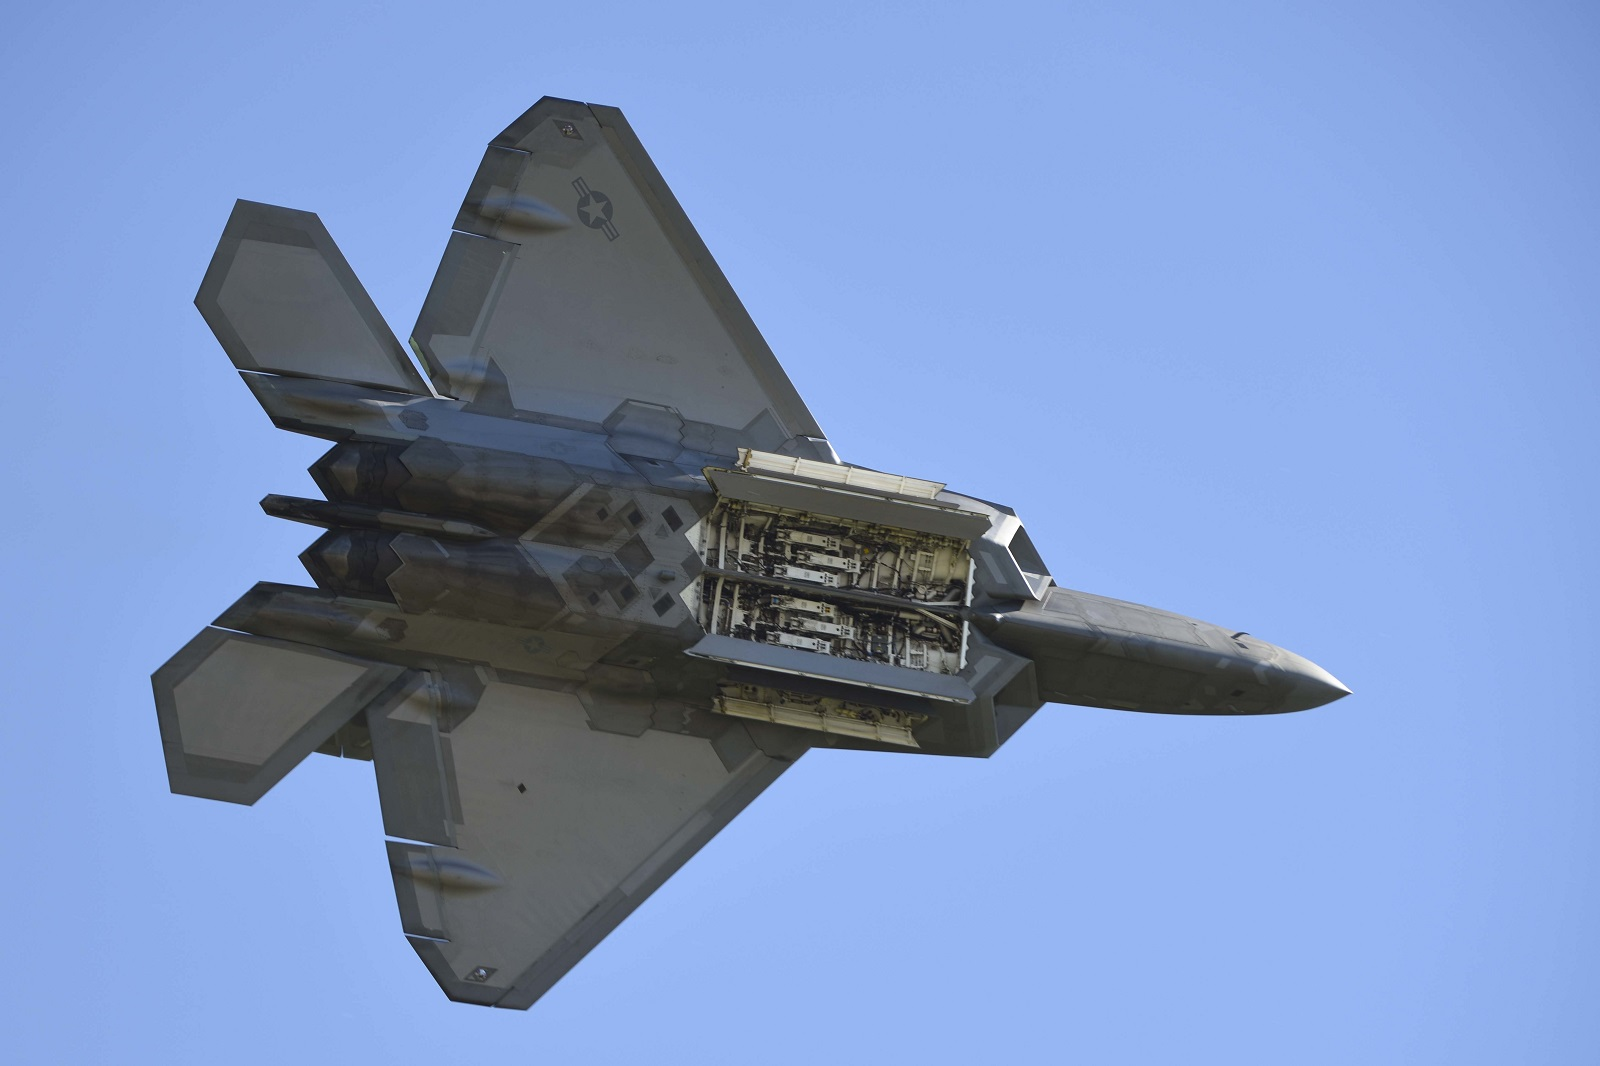 Raptor Bomber: The Air Force Really Dreamed Up a F-22 Stealth Bomber?